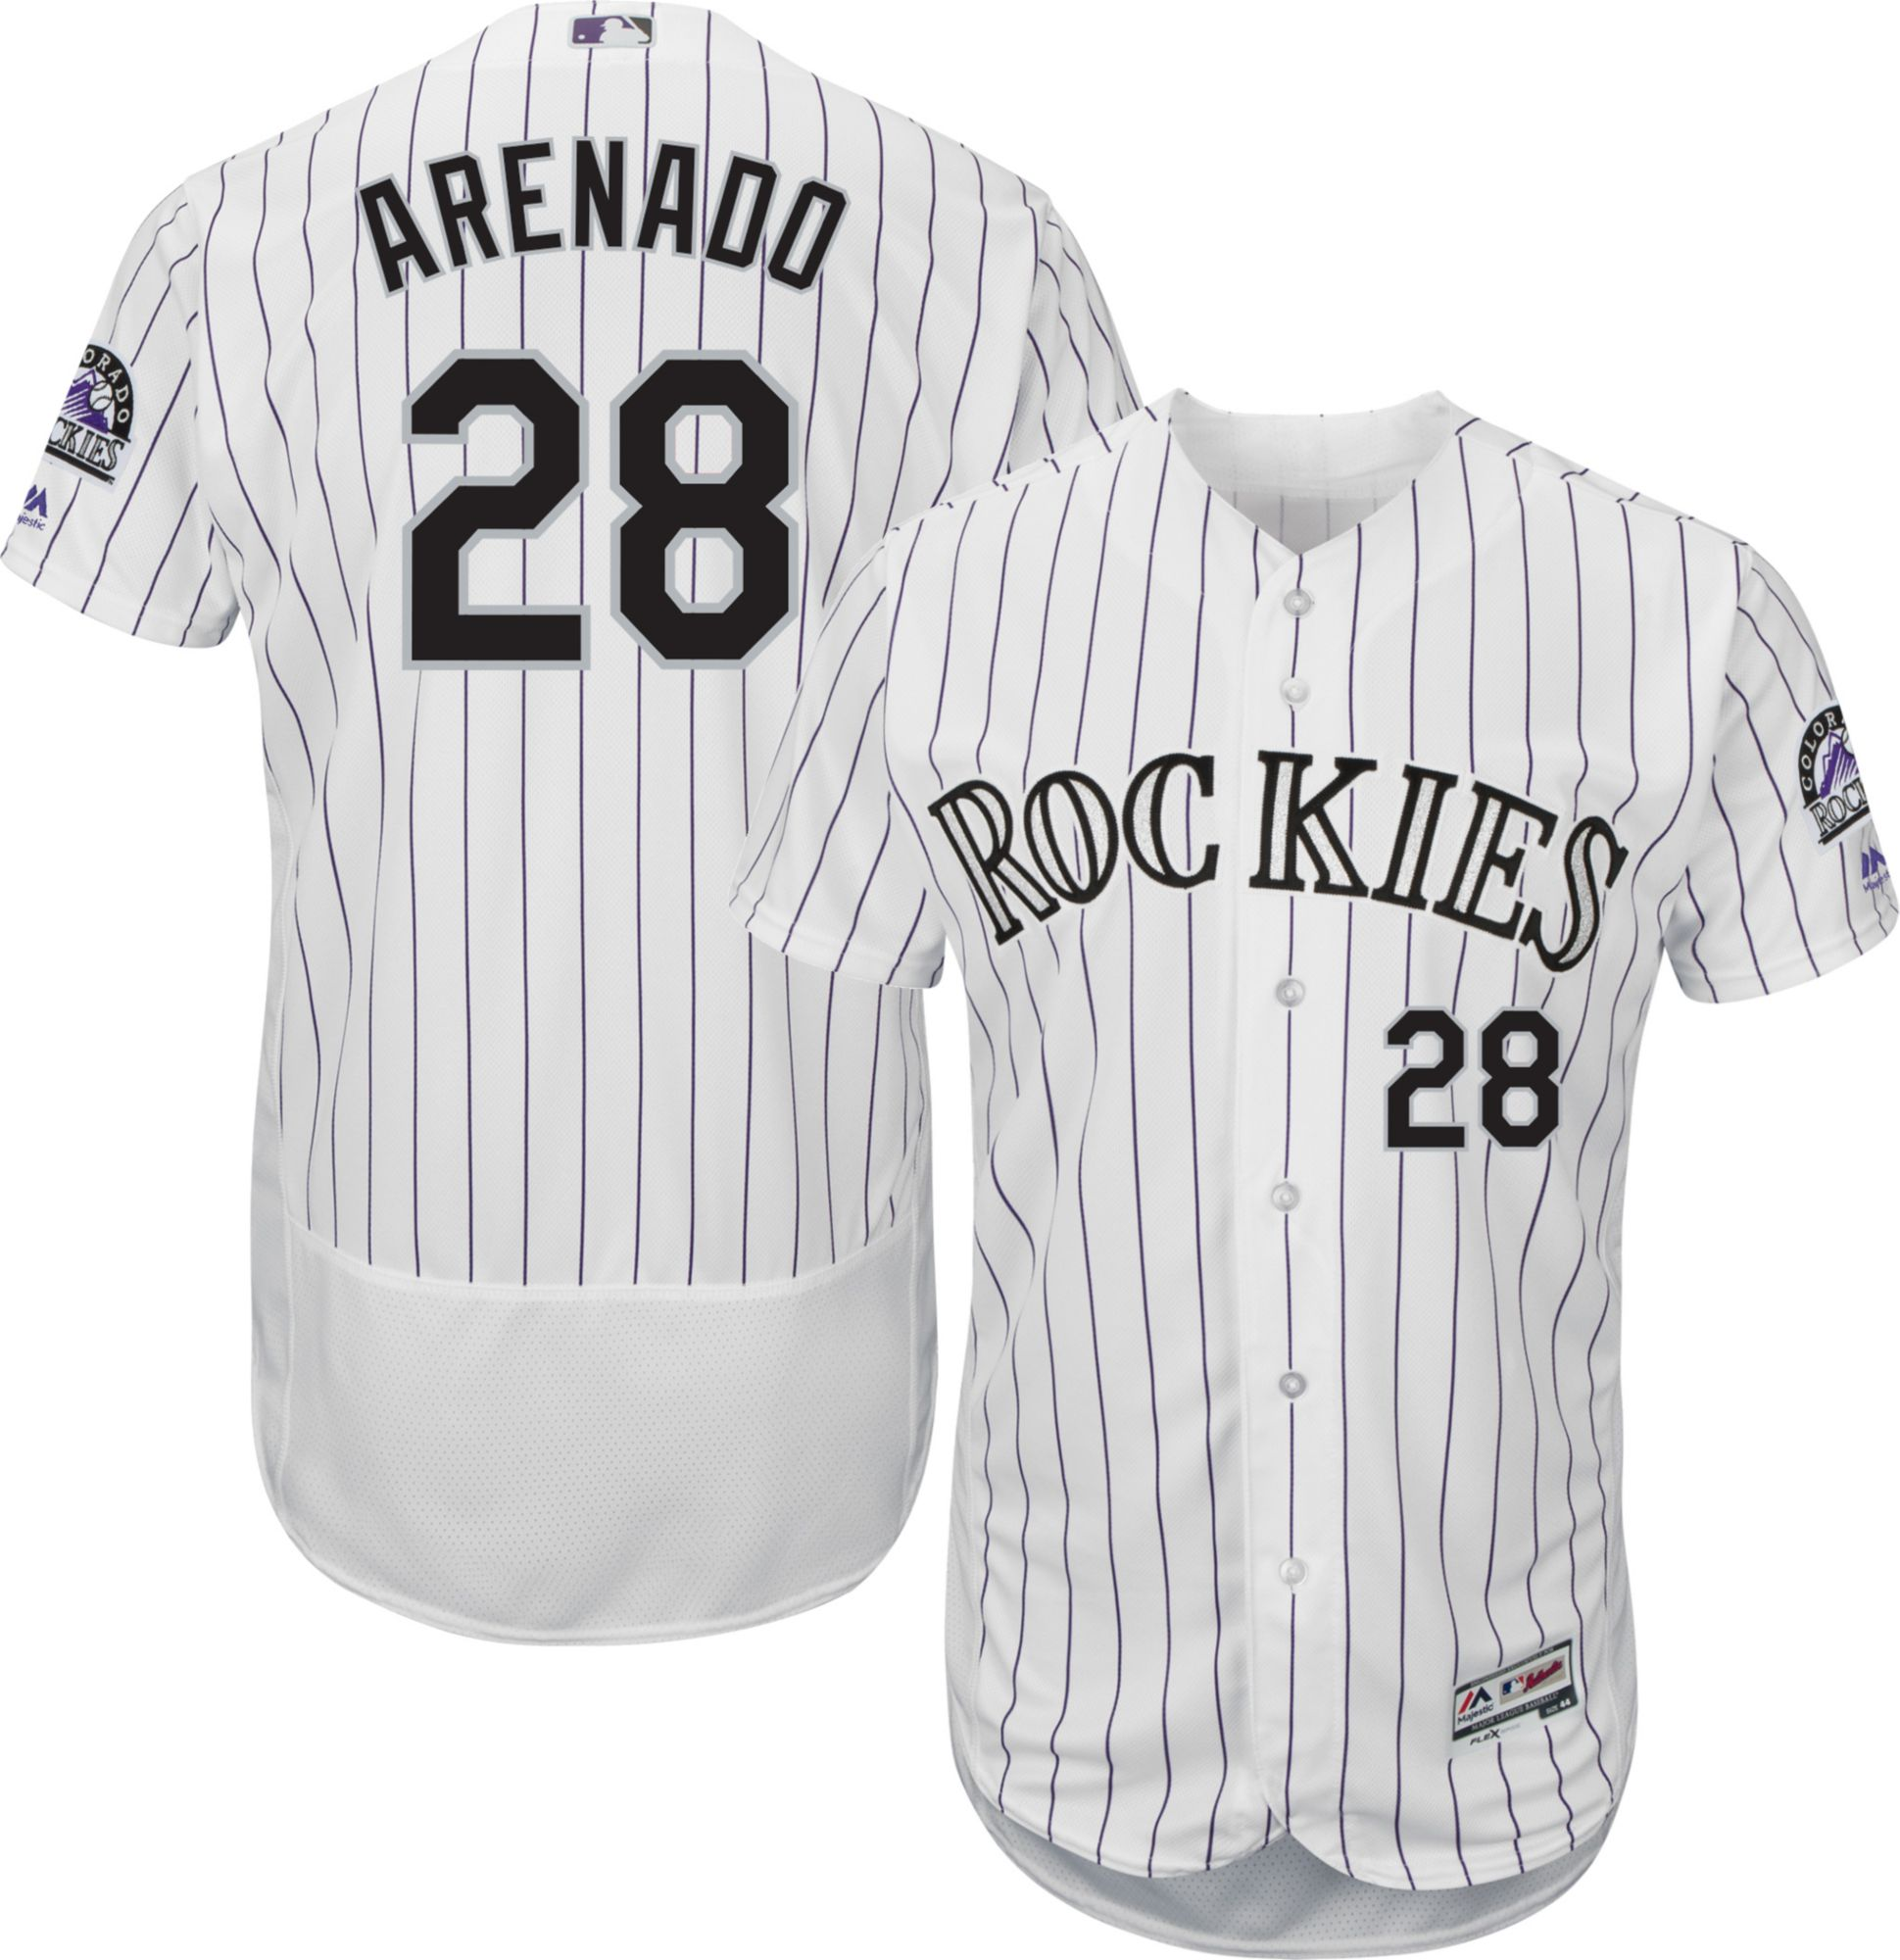 5dc7d6b4c25 Majestic Men s Authentic Colorado Rockies Nolan Arenado  28 Flex ...